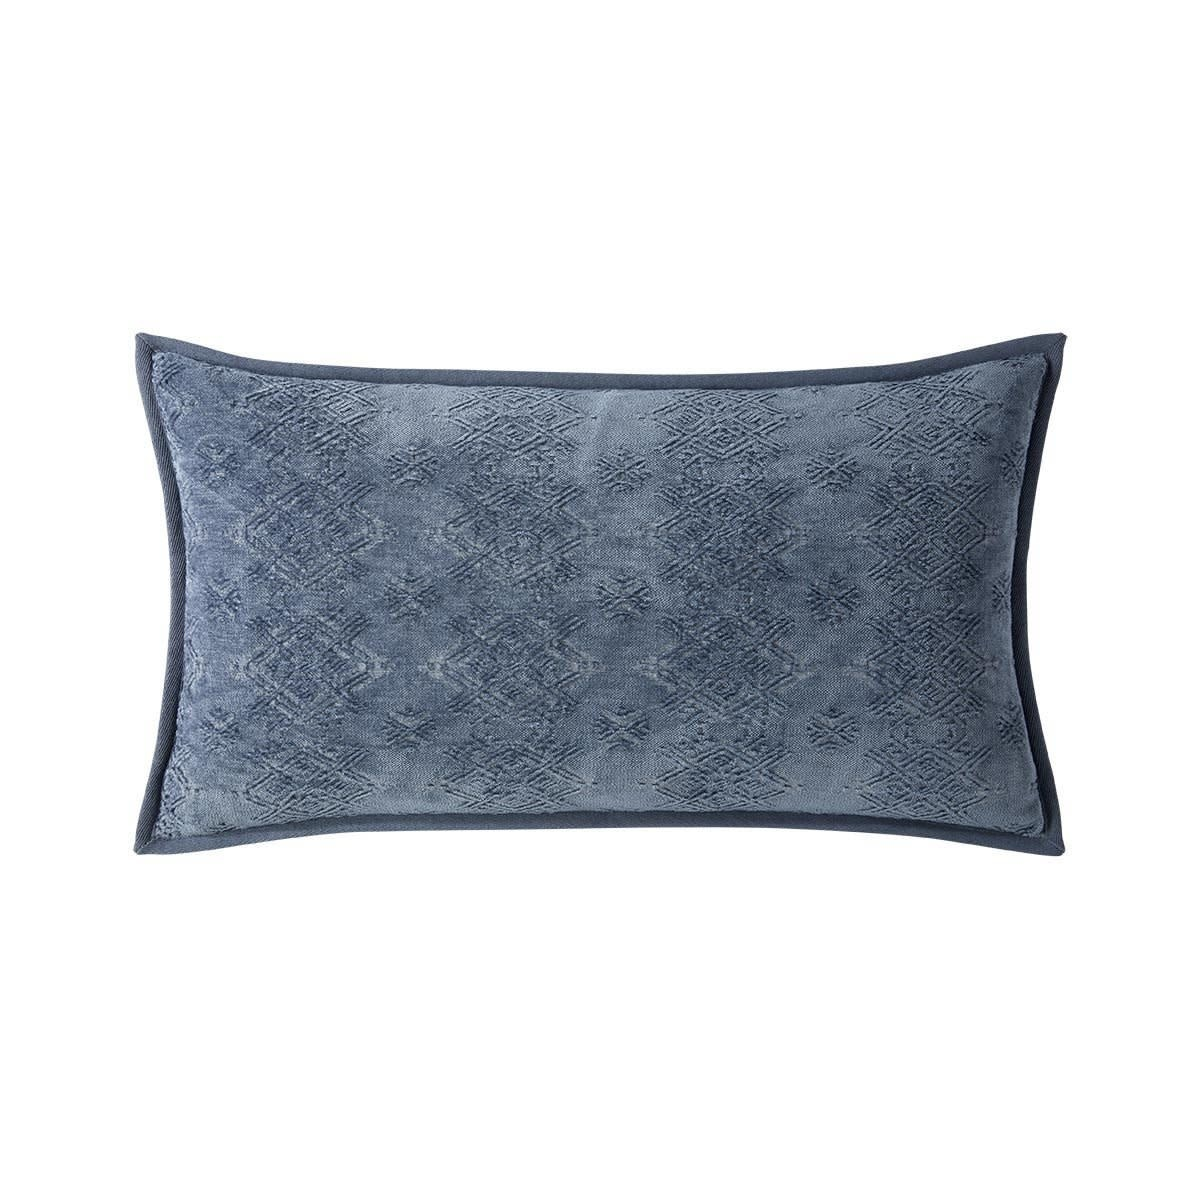 Yves Delorme Syracuse Decorative Pillow